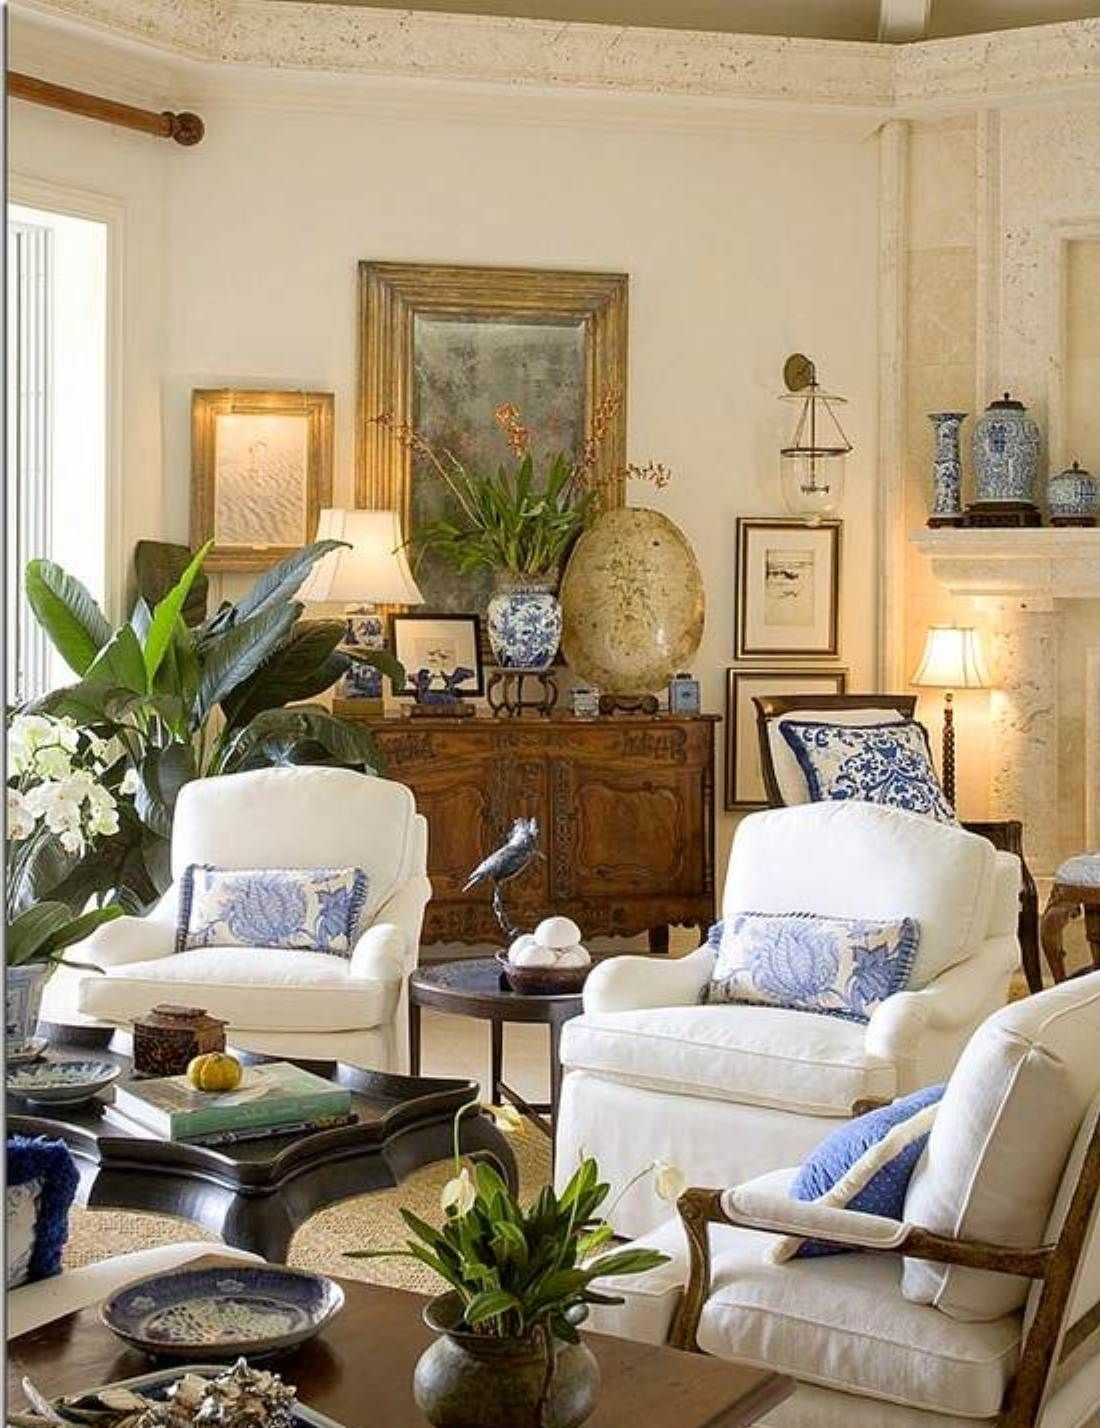 Living Room Traditional Living Room Decor 1000 images about living room ideas on pinterest furniture and sectional rooms